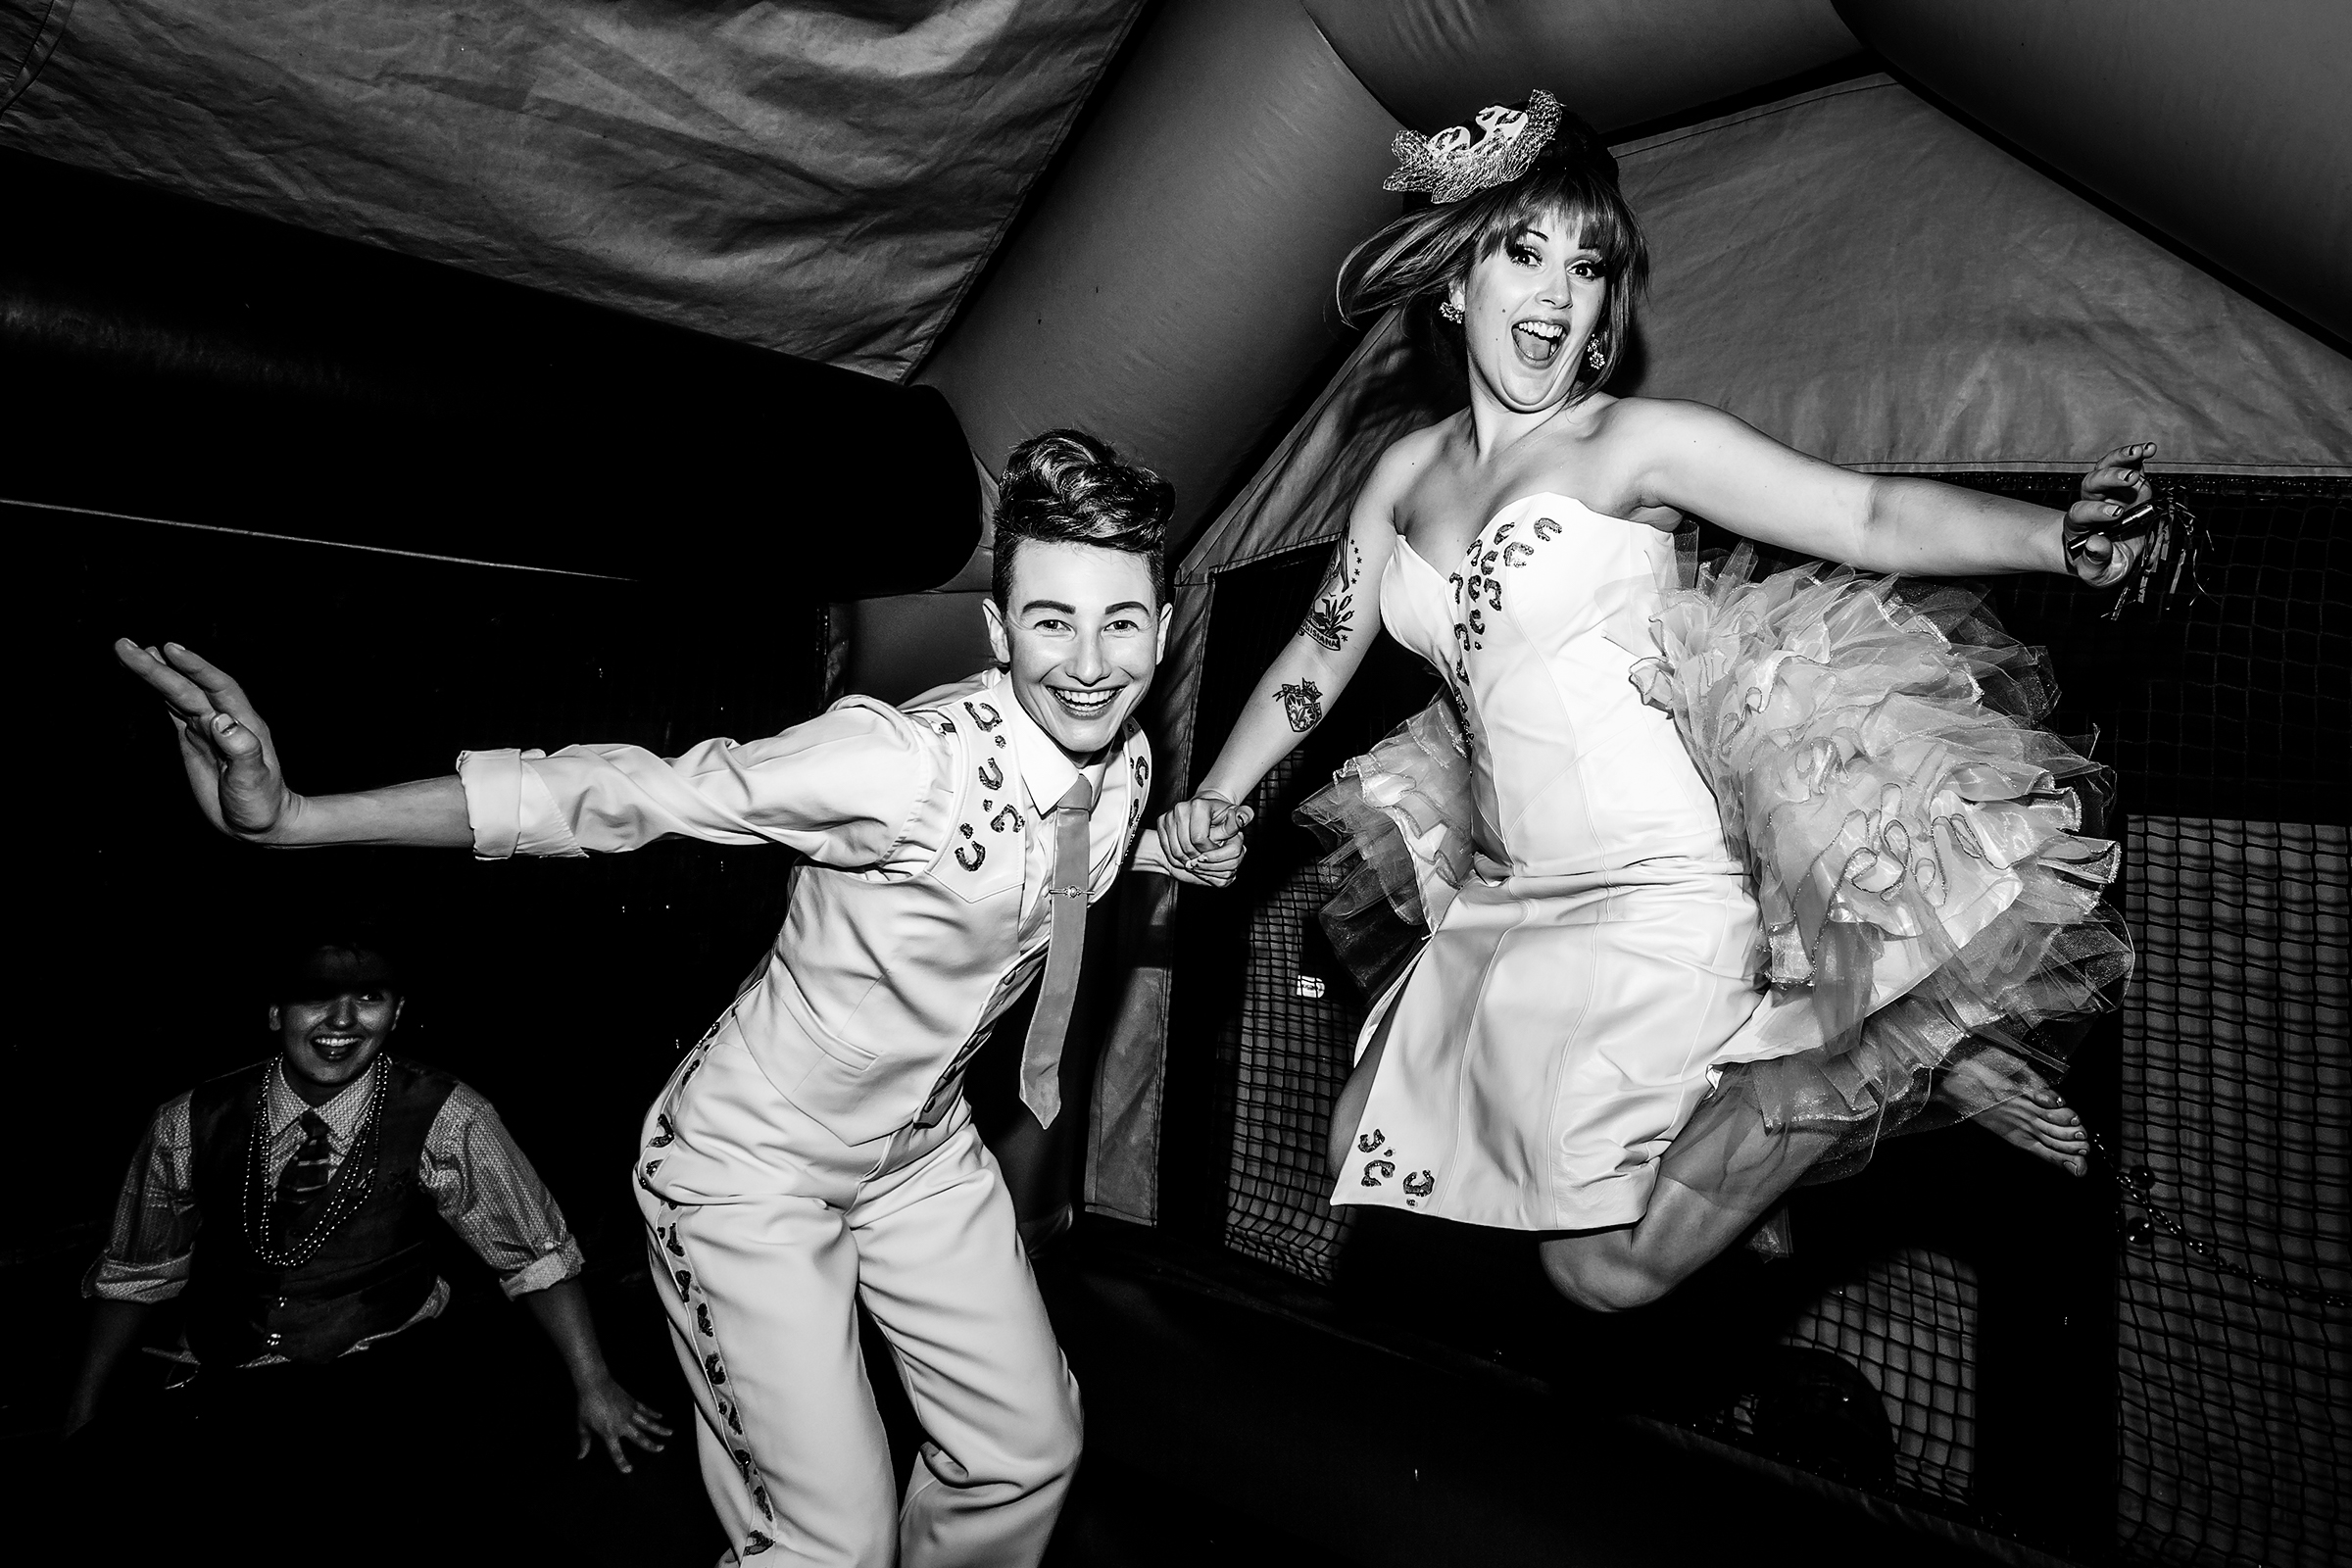 """Susanna Raphael Wellbourne and Ricki Mason, better known by their stage names Kitten and Lou, enjoy a moment in a bouncy house after tying the knot in an extravaganza of glitter and balloons in Seattle on July 28th, 2013. The burleque performer and drag queen are self-proclaimed """"The World's Show-Busiest Couple!"""""""